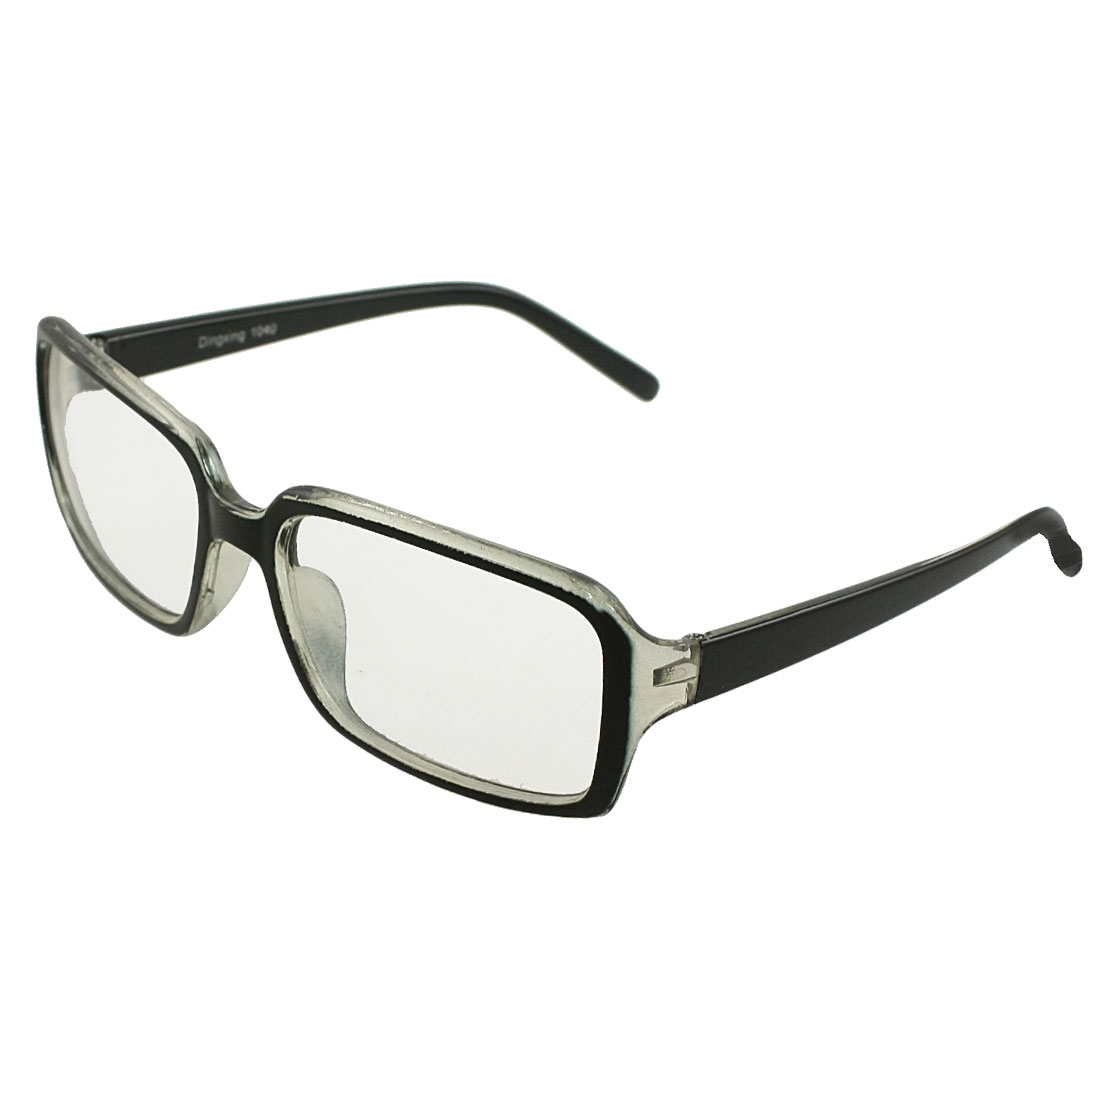 Plastic Black Clear Arms Rim Clear Lens Plain Glasses Spectacles for Men Woman